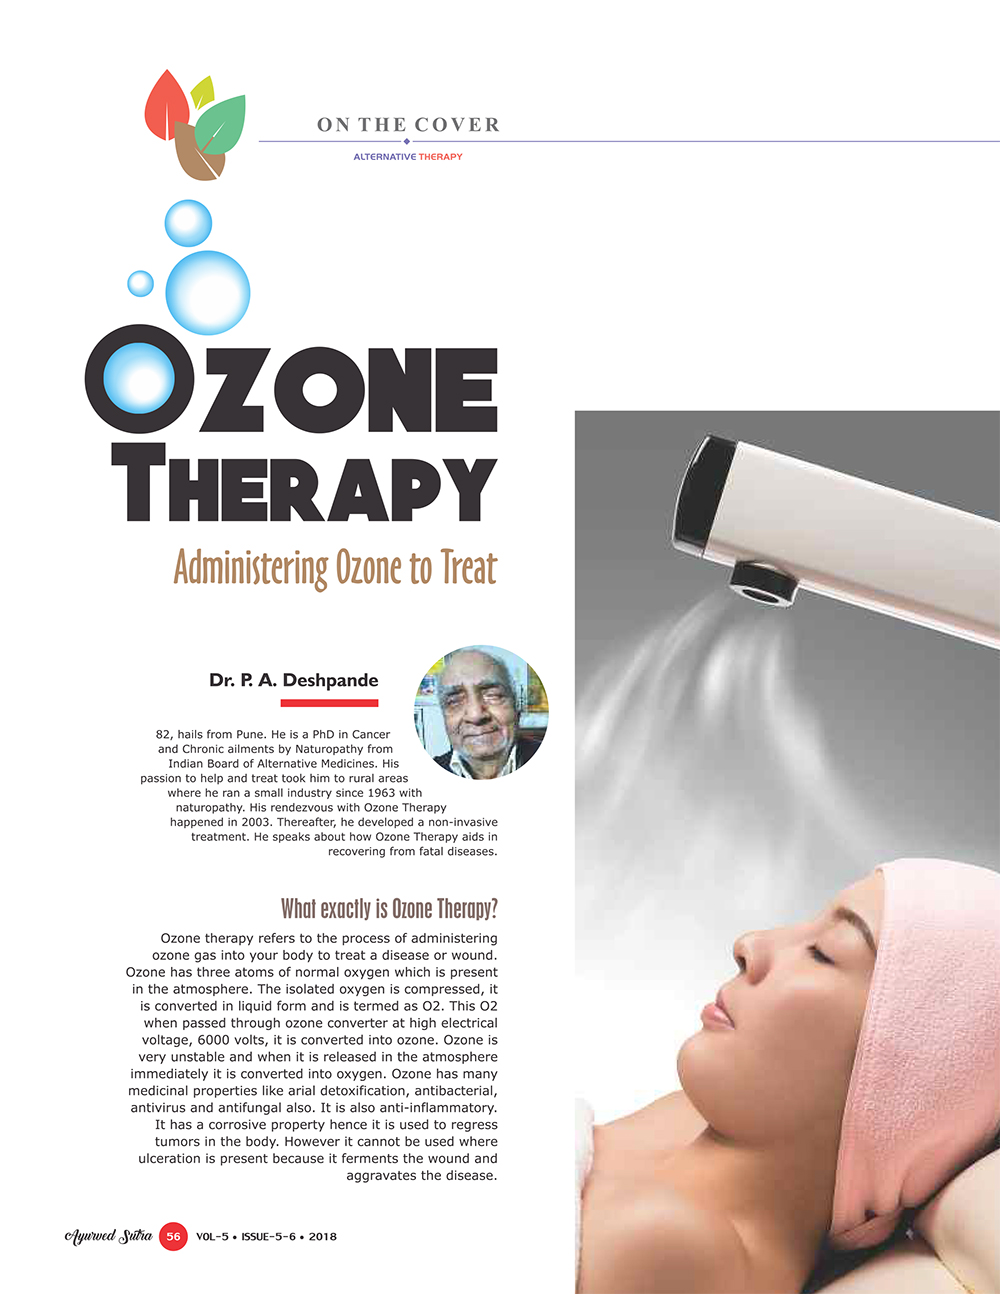 Ayurvedsutra Vol 05 issue 05 06 58 - Ozone Therapy:  Administering Ozone to Treat